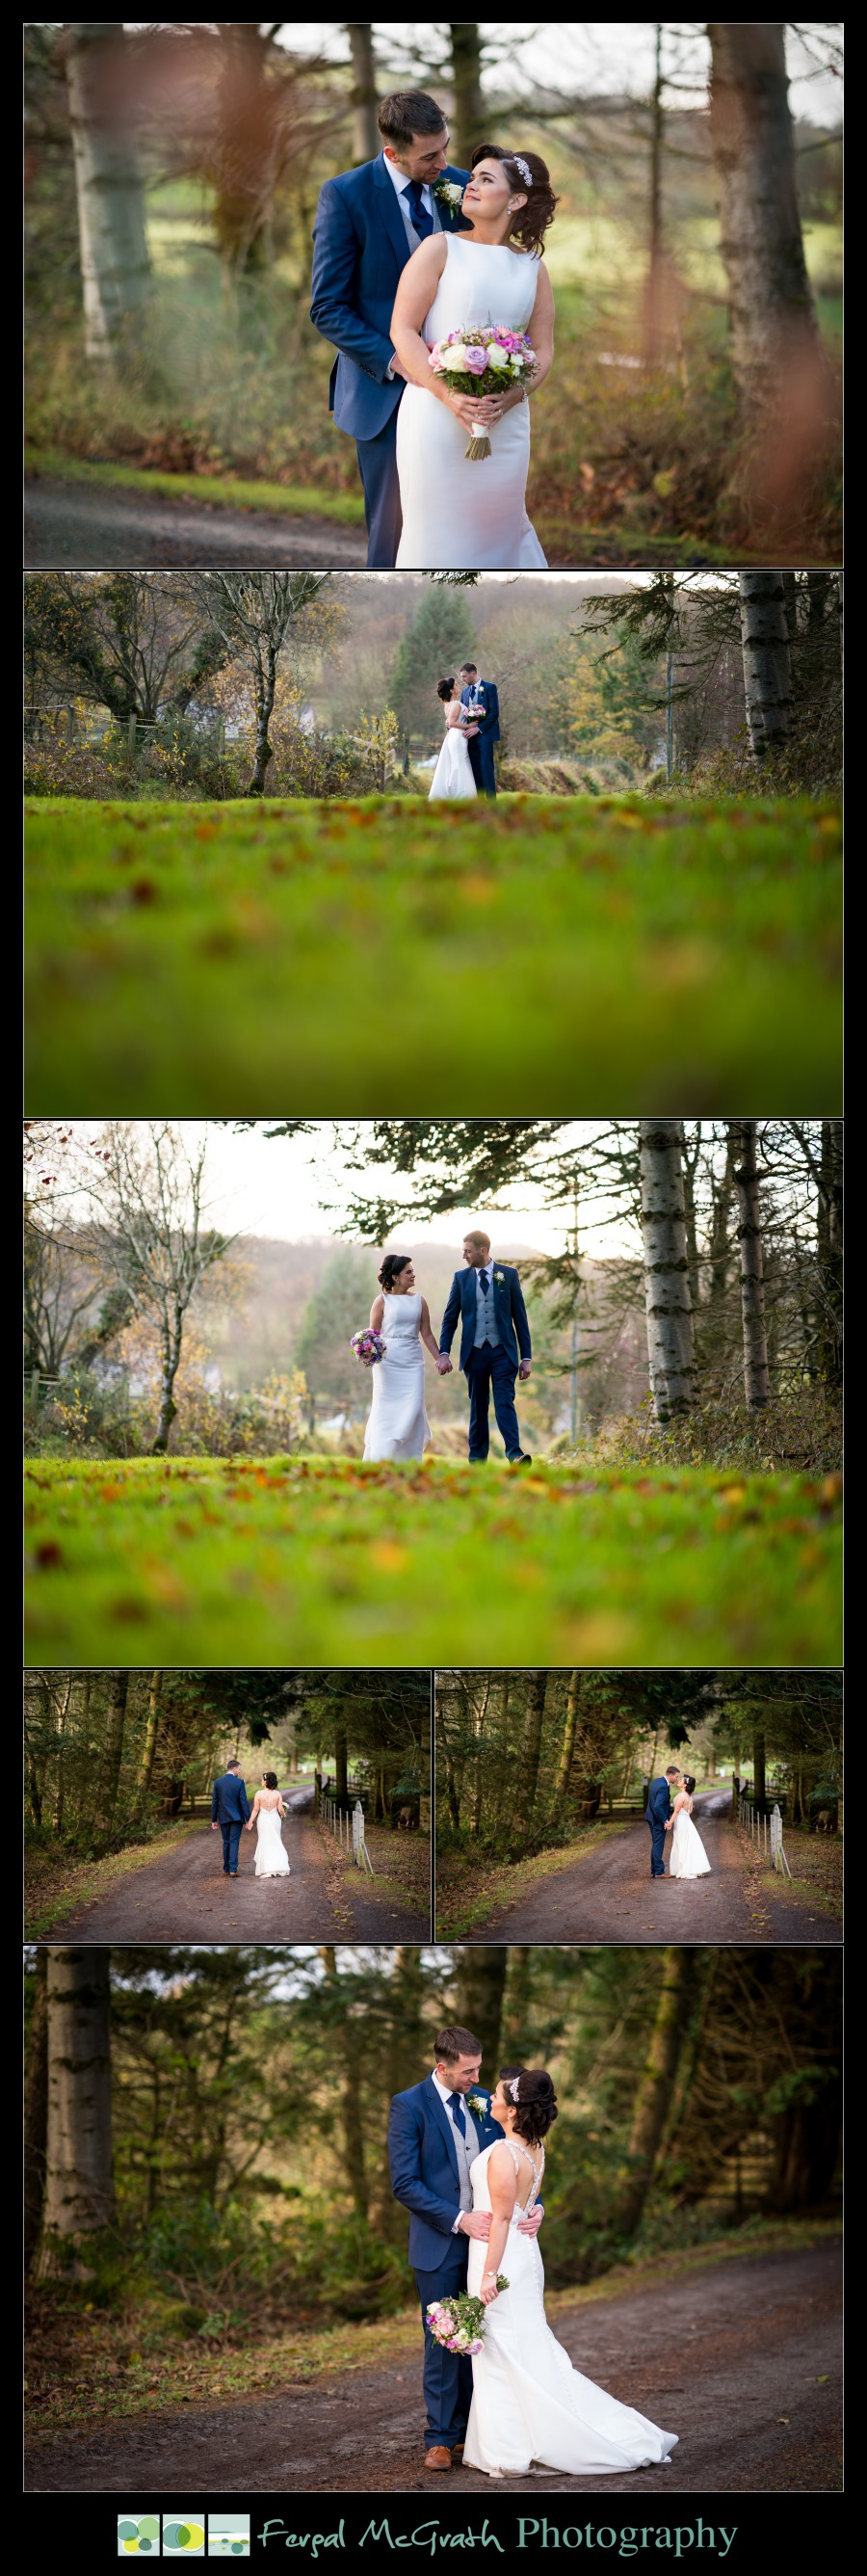 Silver Tassie Hotel Letterkenny Winter Wedding bride and groom photos in beautiful woodland